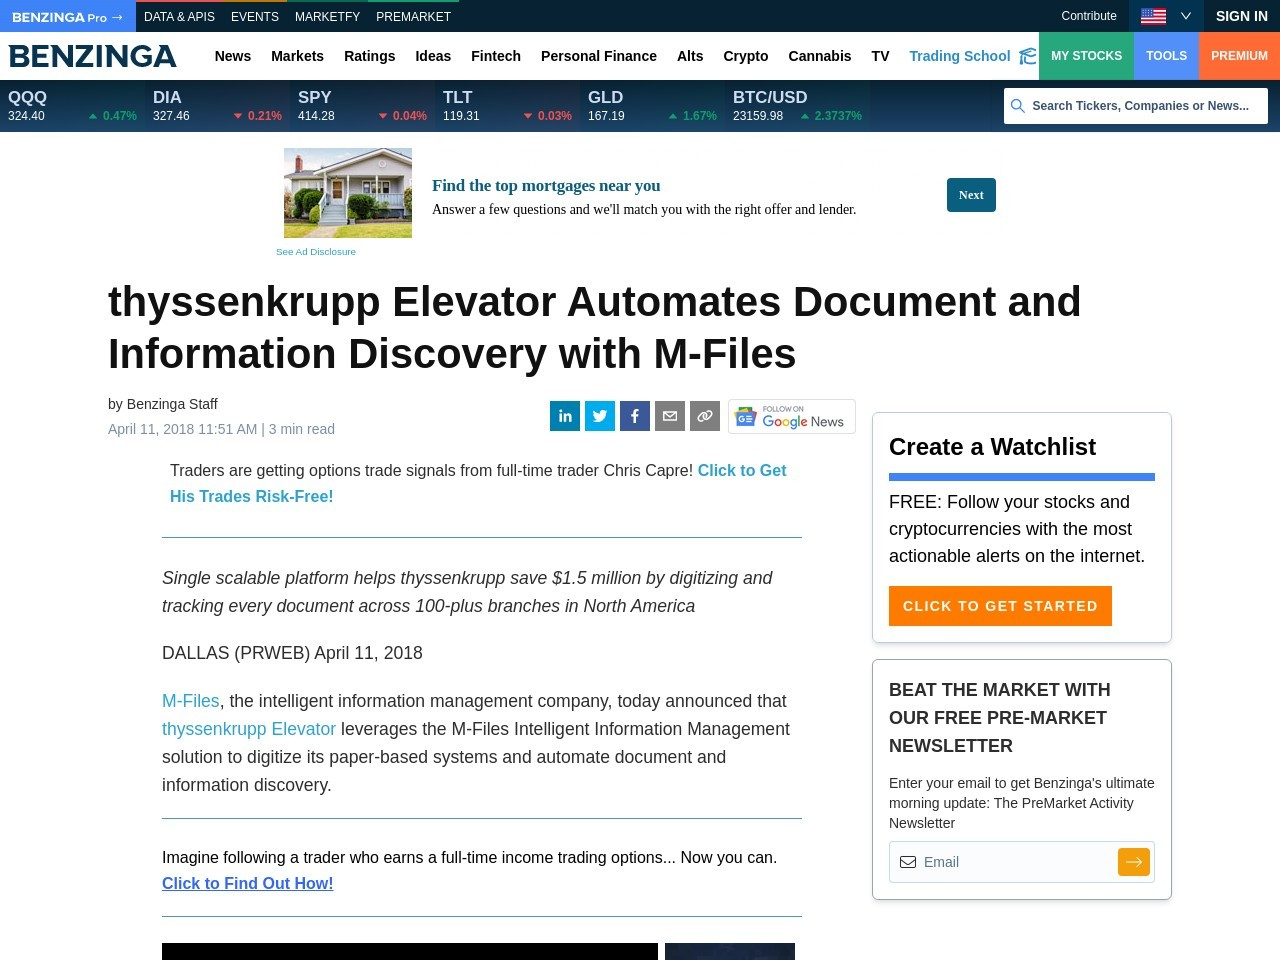 thyssenkrupp Elevator Automates Document and Information Discovery with M-Files